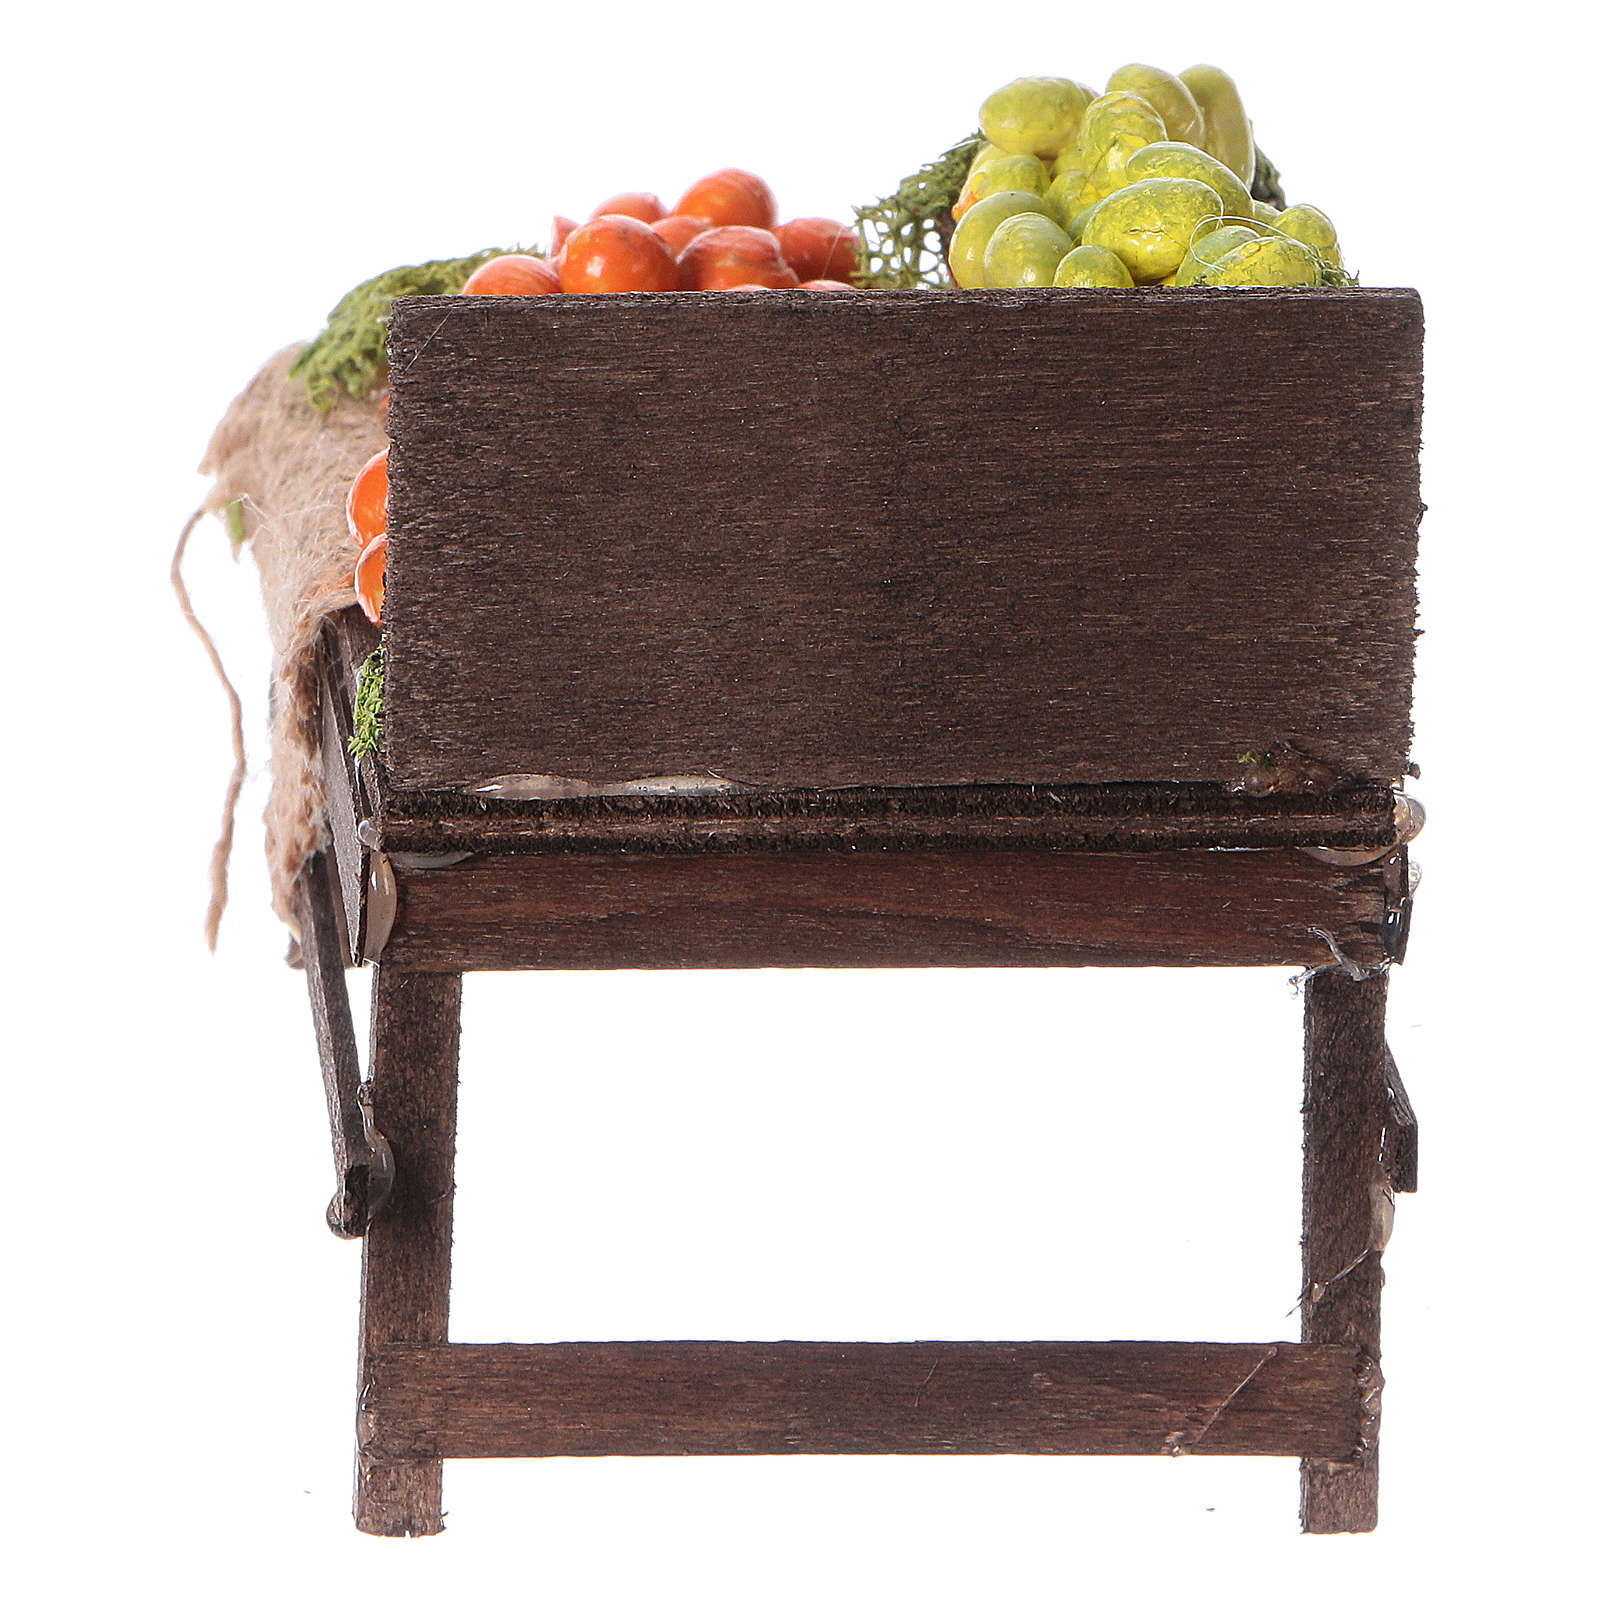 Neapolitan set accessory stand with citrus fruits terracotta 4